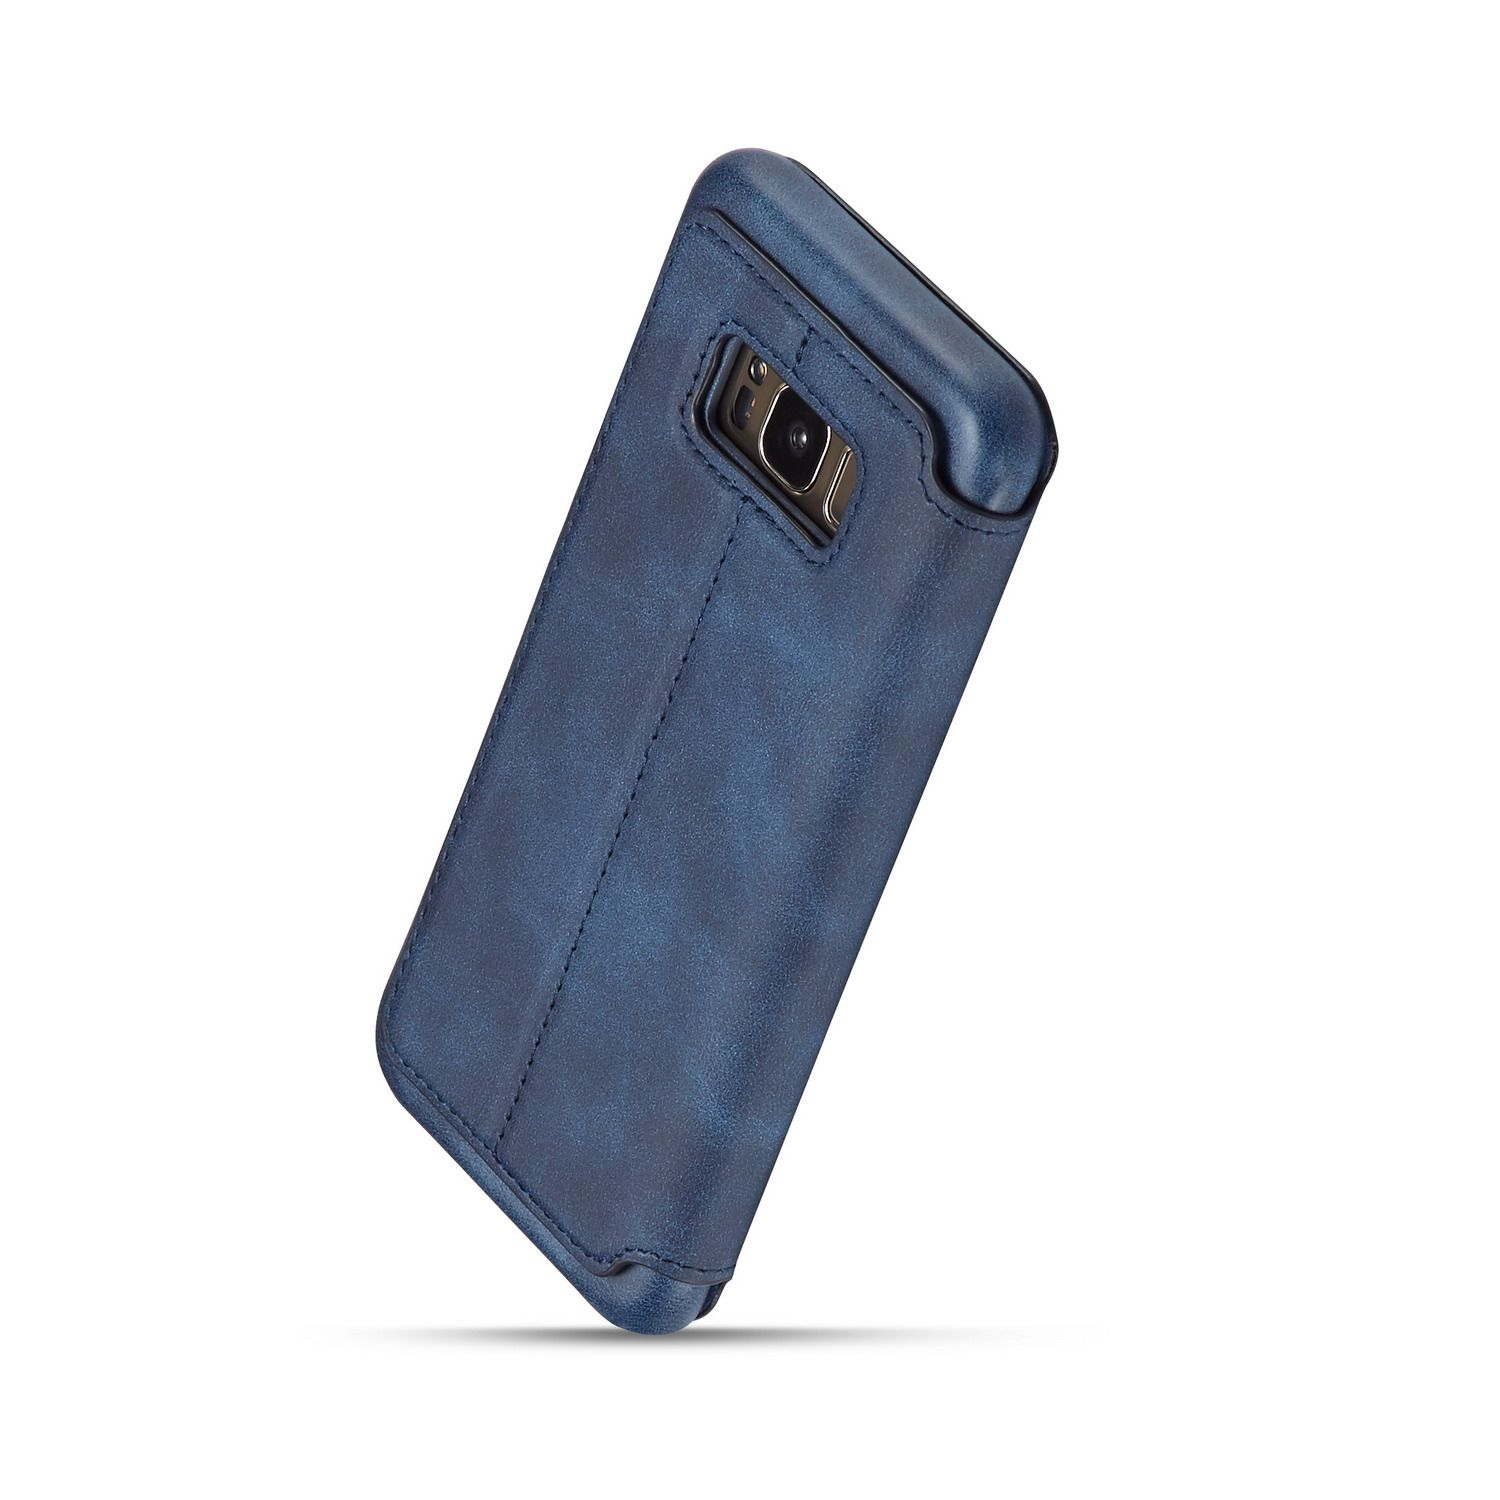 Samsung S8 Plus S8 Leather Case With Images Leather Case Leather S8 Plus